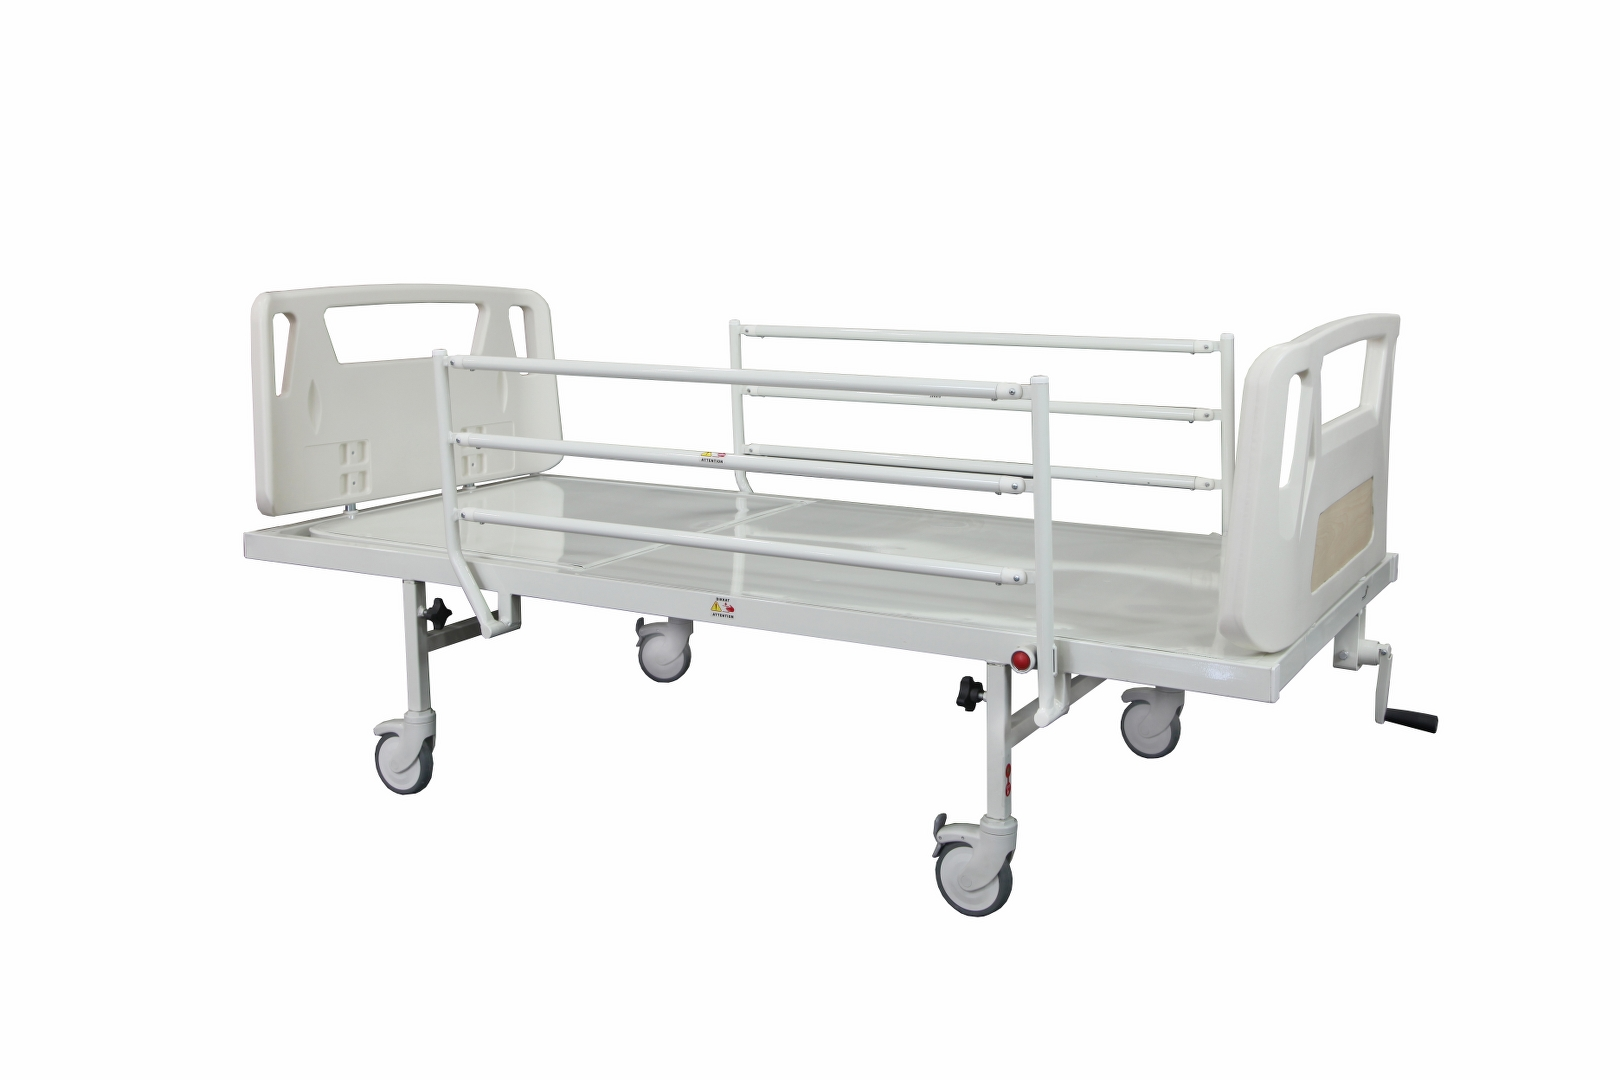 HKM-TC10 MECHANICAL HOSPITAL BED WITH ONE ADJUSTMENT